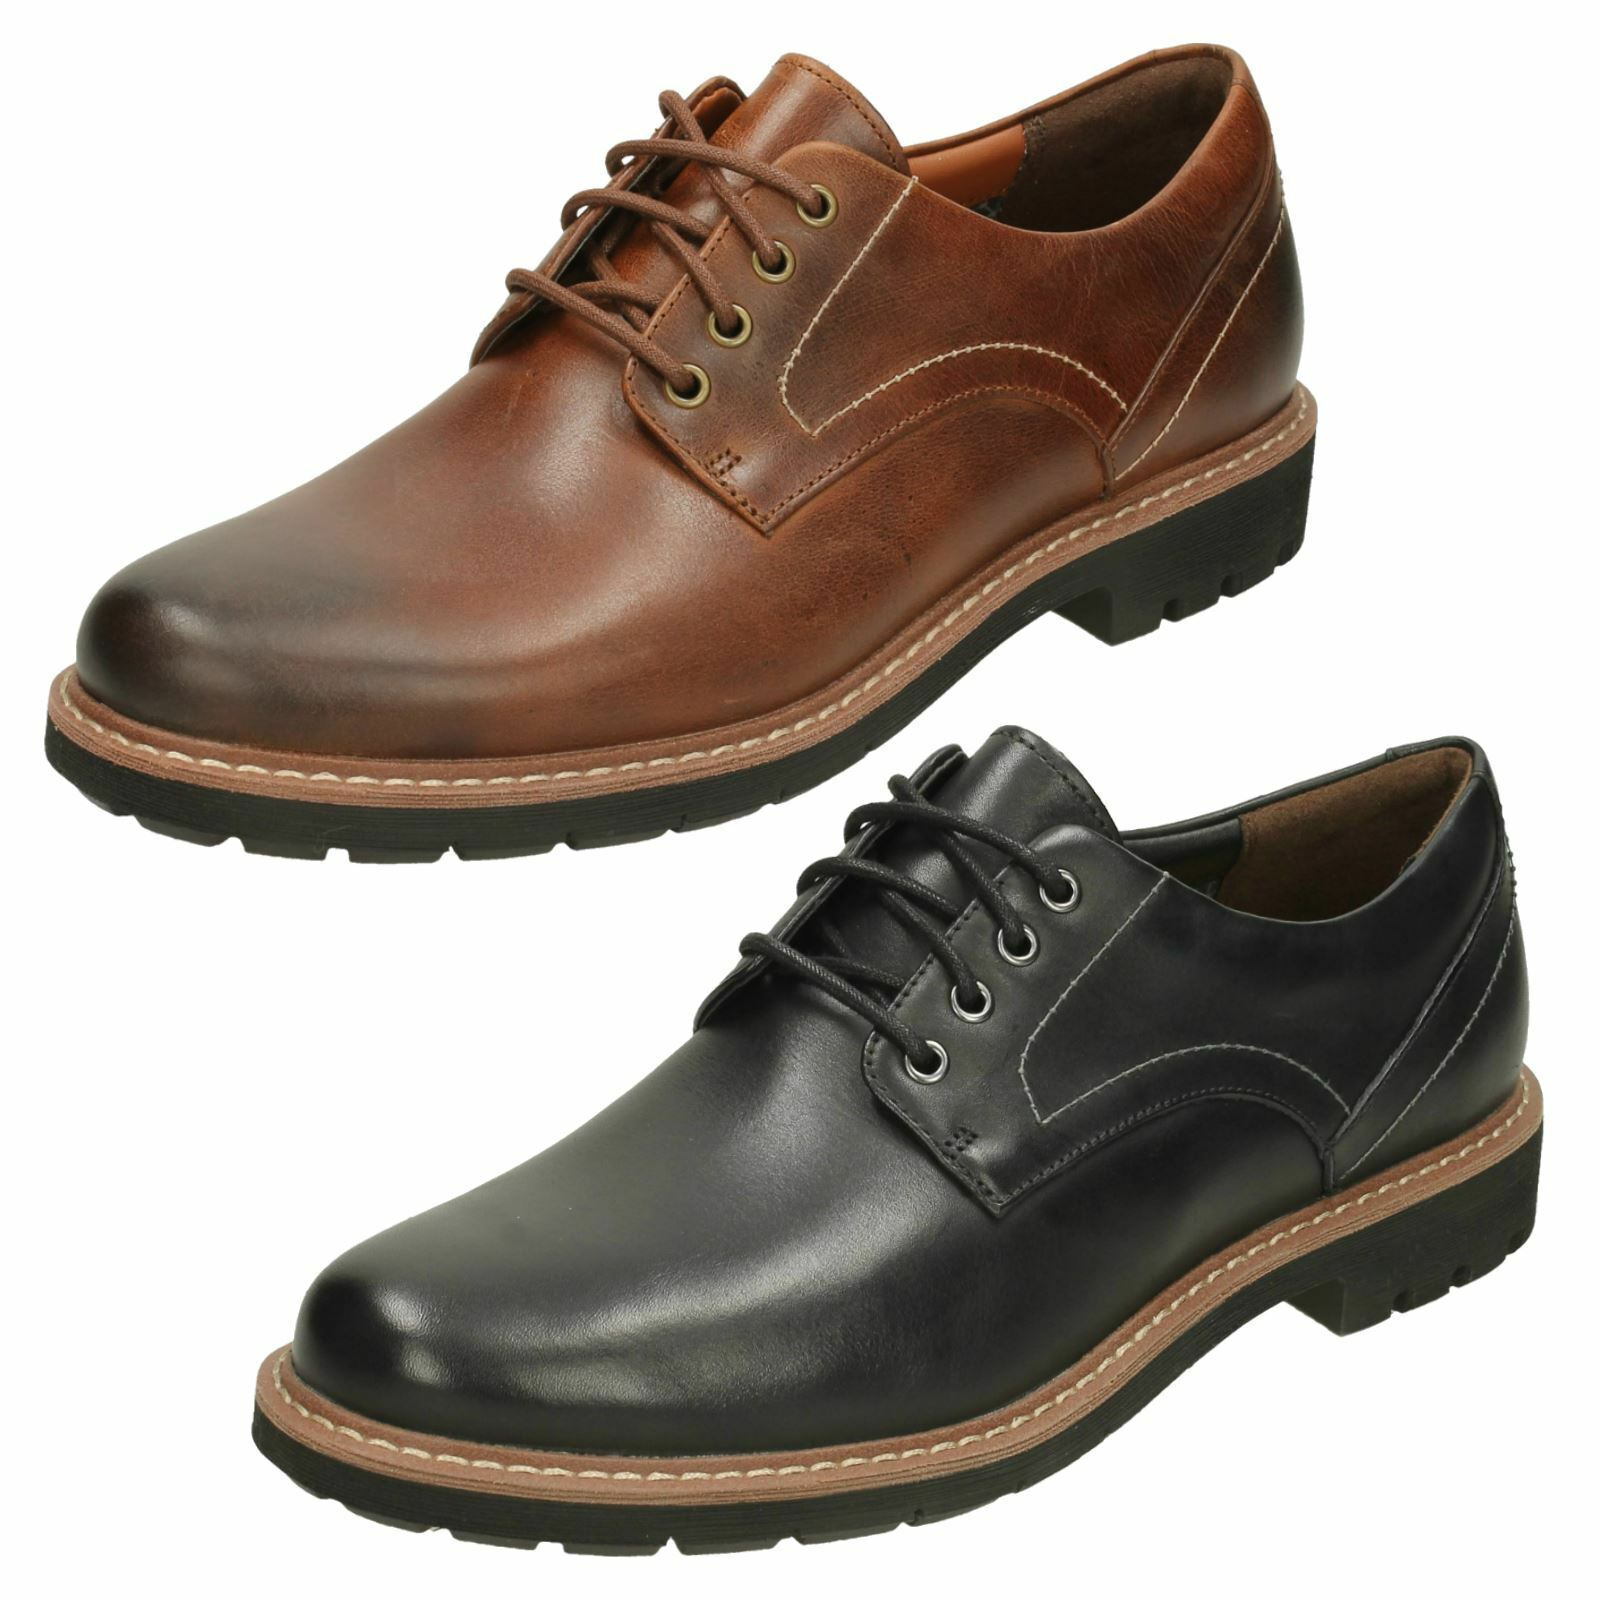 Up Uomo Clarks Smart Lace Up  Schuhes 'Batcombe Hall' e51fd7